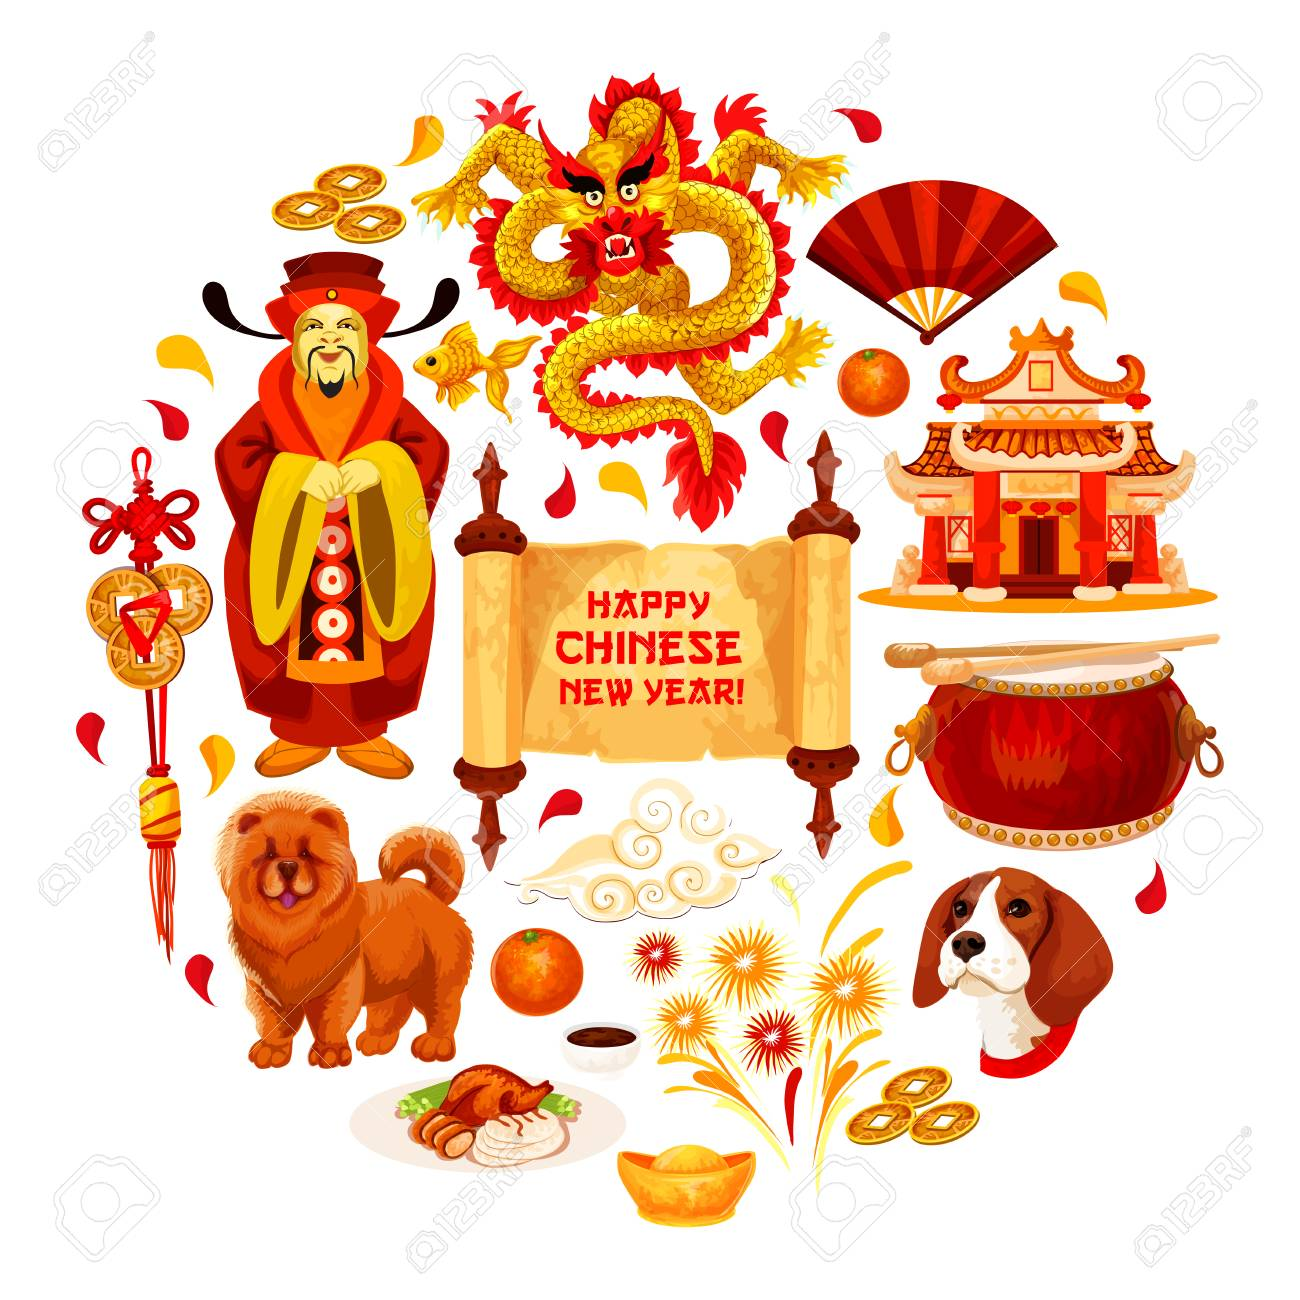 Happy Chinese New Year Poster Of Traditional China Lunar Holiday